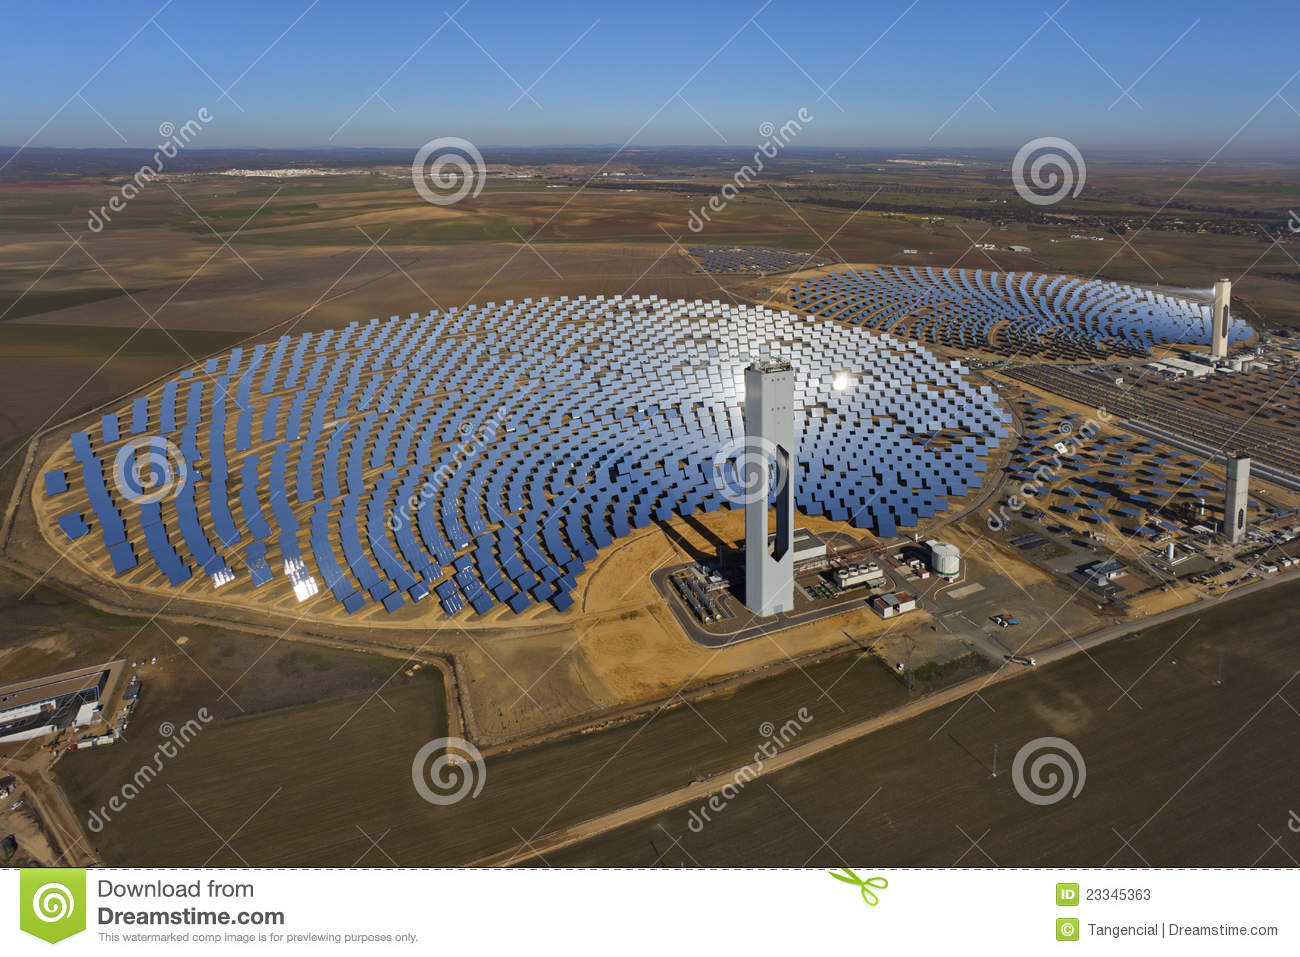 Solar Thermal Power Plant Stock Photos - Image: 23345363